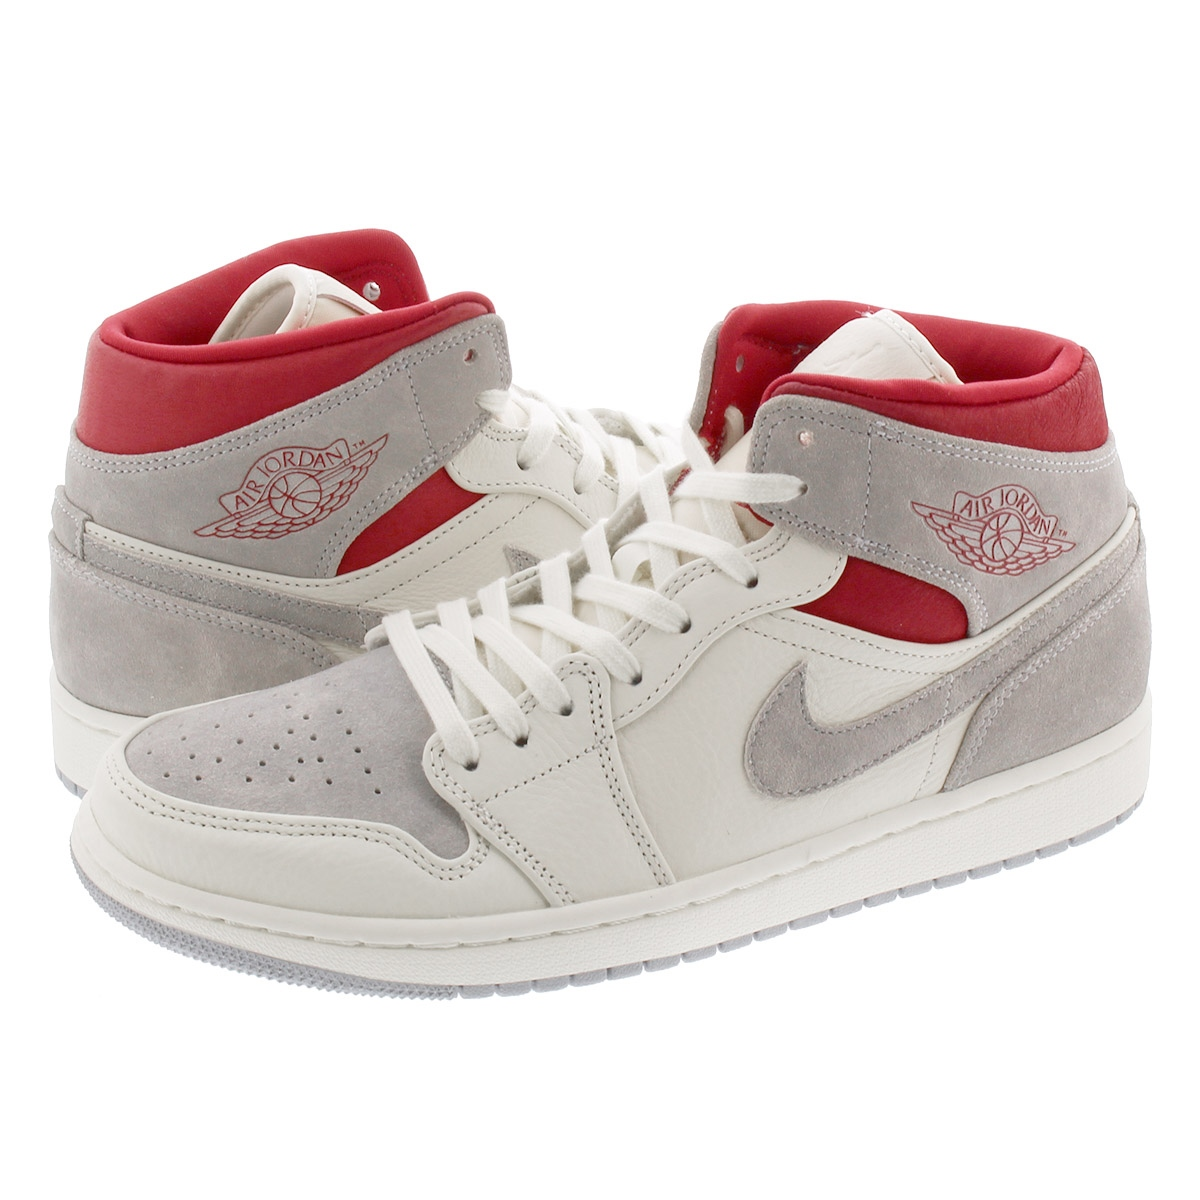 NIKE AIR JORDAN 1 MID PRM 【SNEAKERSNSTUFF】 ナイキ エア ジョーダン 1 ミッド プレミアム SAIL/WOLF GREY/GYM RED/WHITE ct3443-100